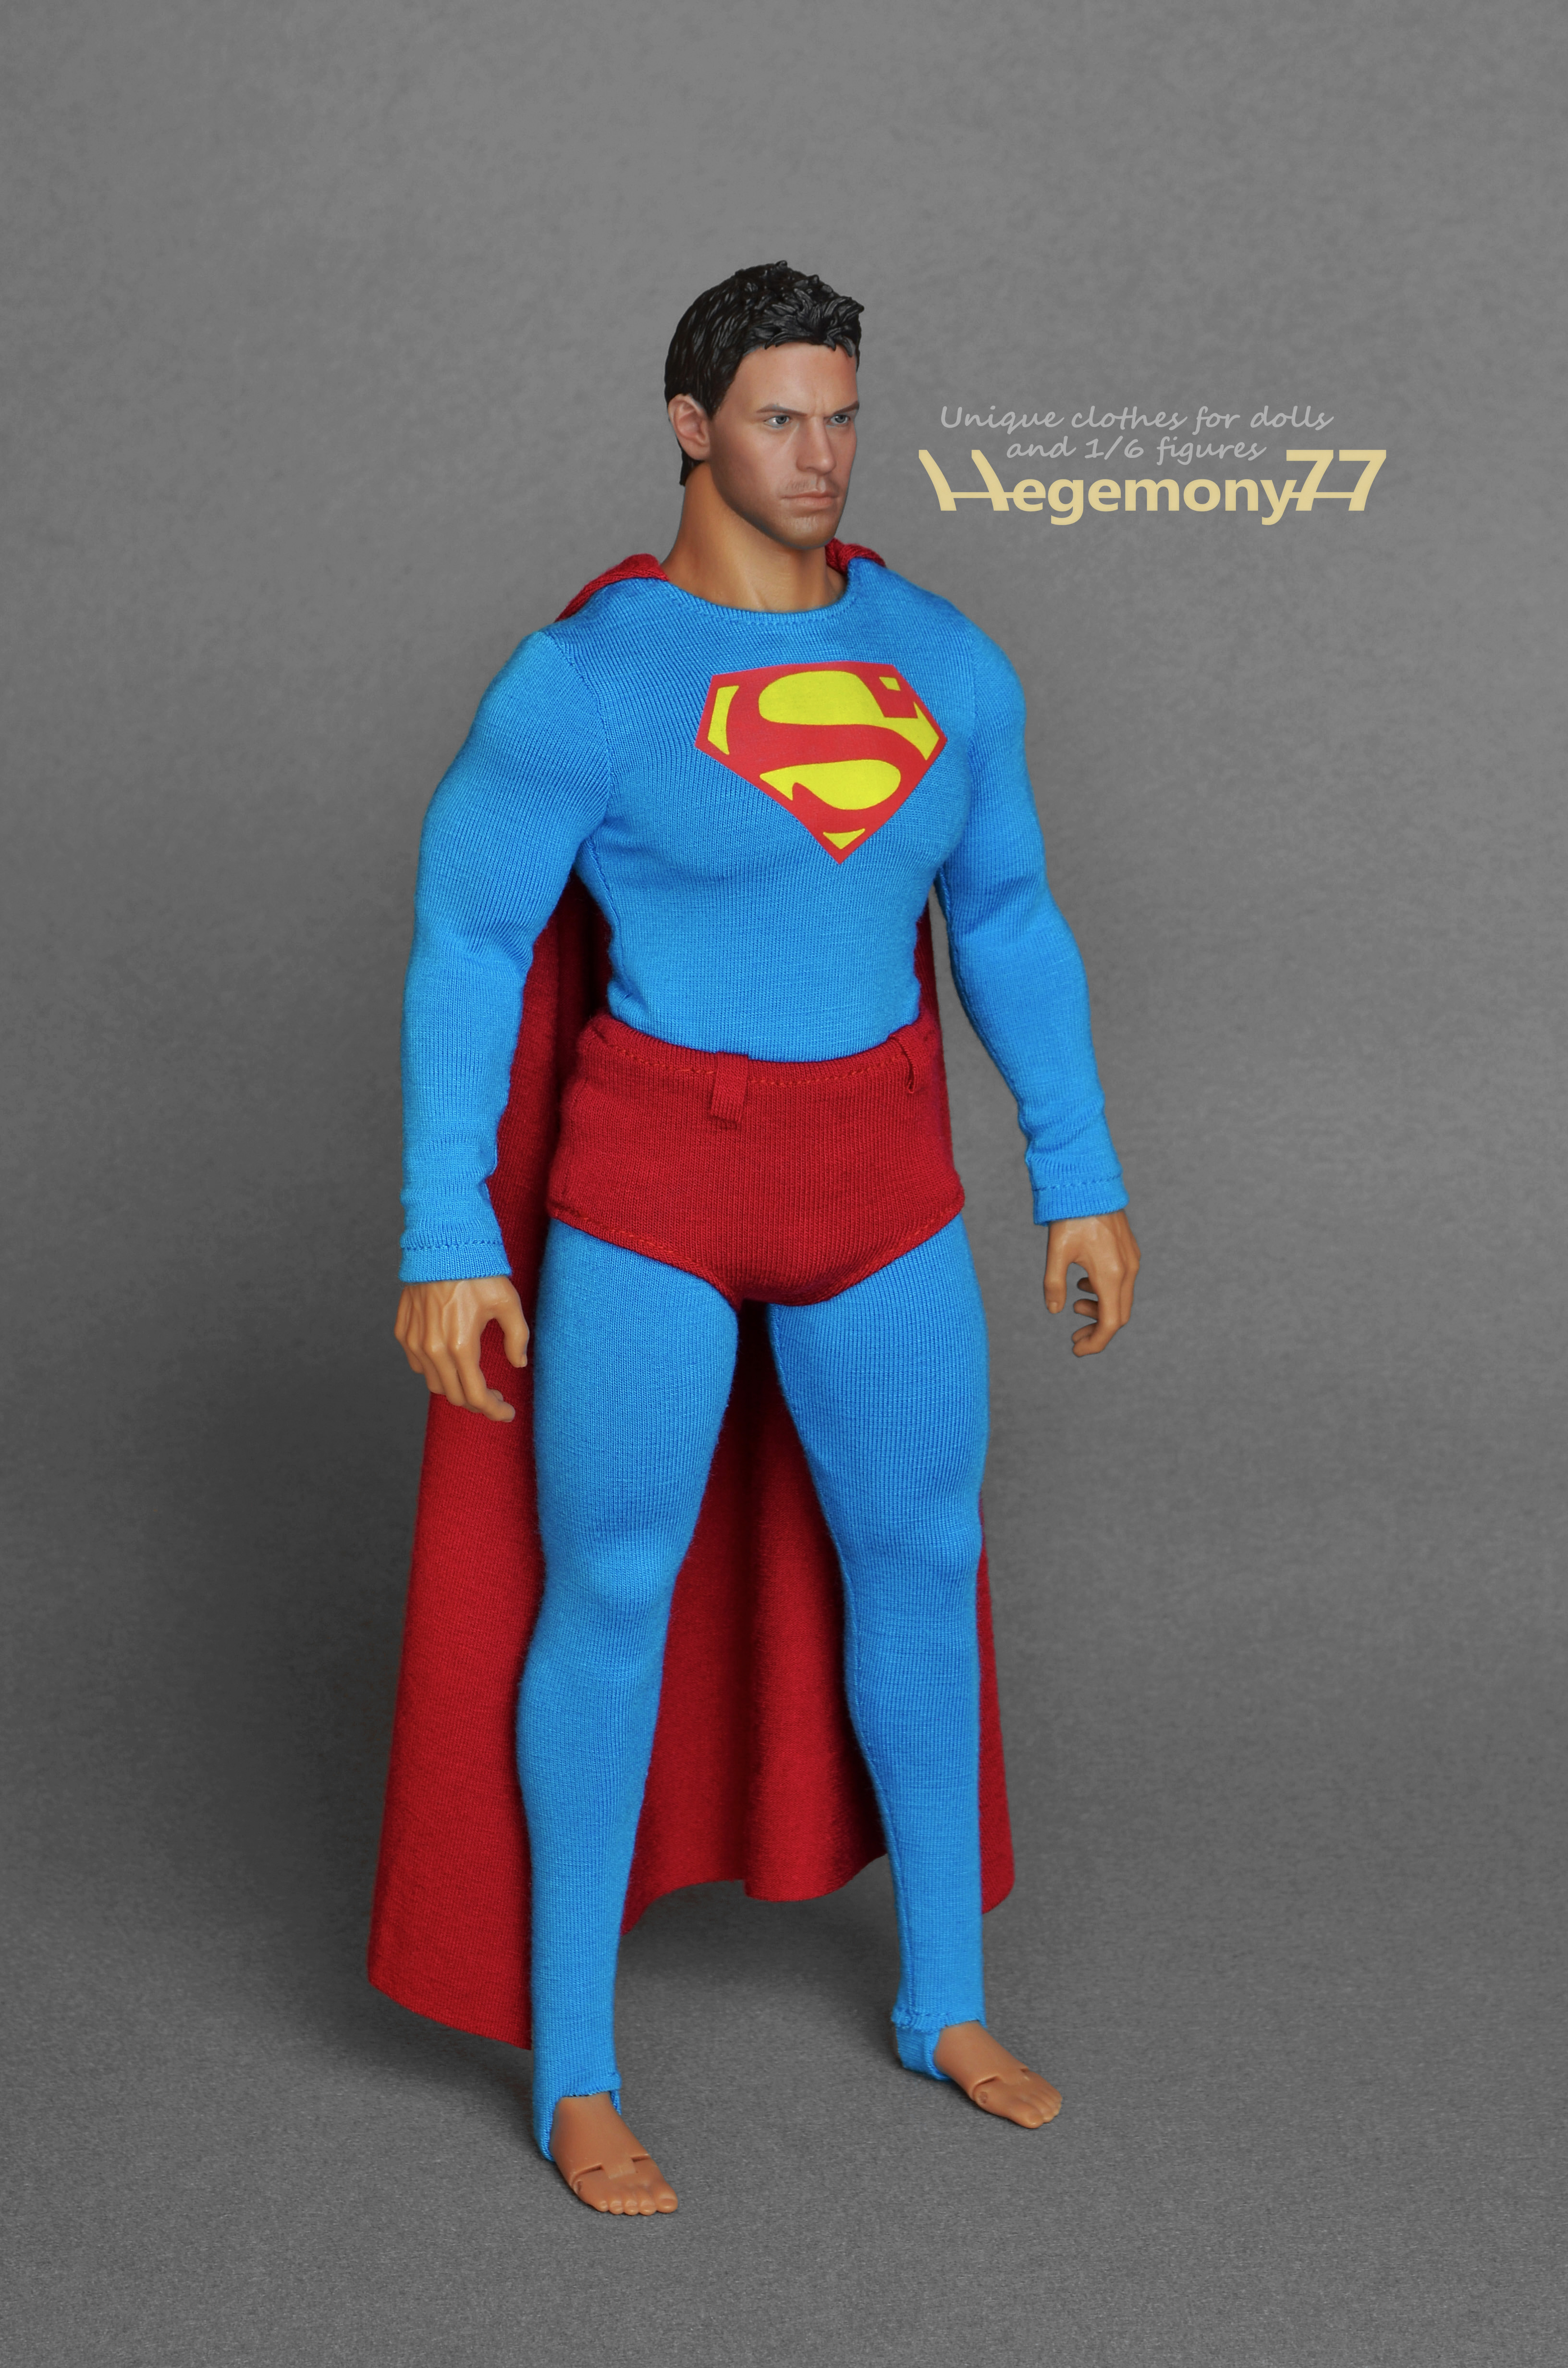 Hot Toys TTM 20 advanced muscular action figure body size Superman costume parts inspired by George Reeves Superman from the 1950s television program - long ...  sc 1 st  Hegemony77 clothes for 1/6 scale action figures and fashion dolls ... & Hot Toys TTM 20 advanced muscular action figure body size Superman ...